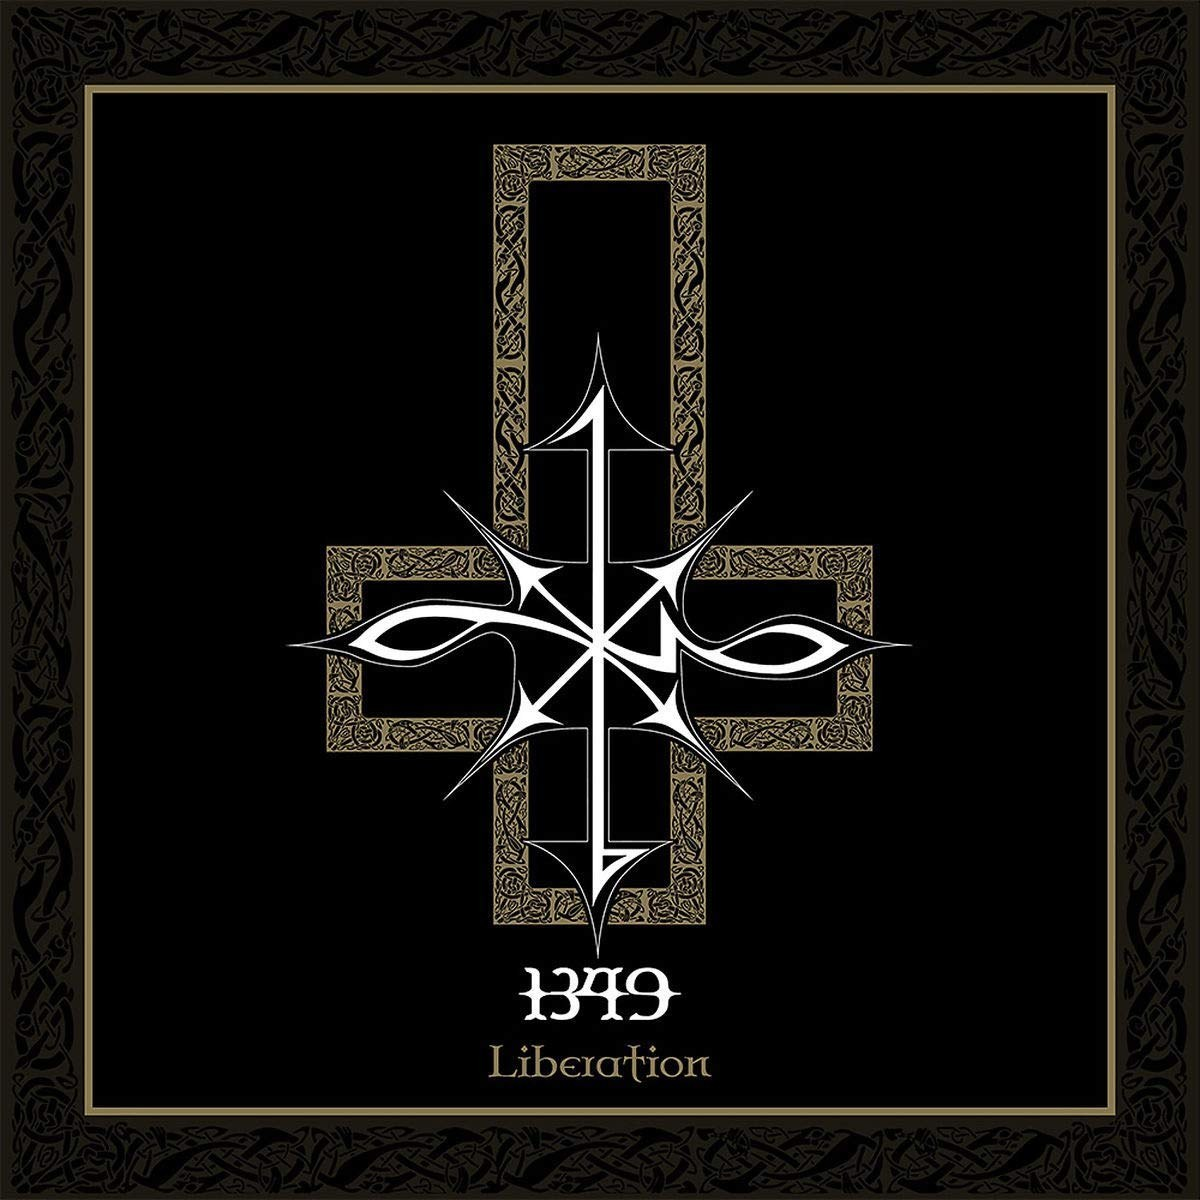 Review for 1349 - Liberation